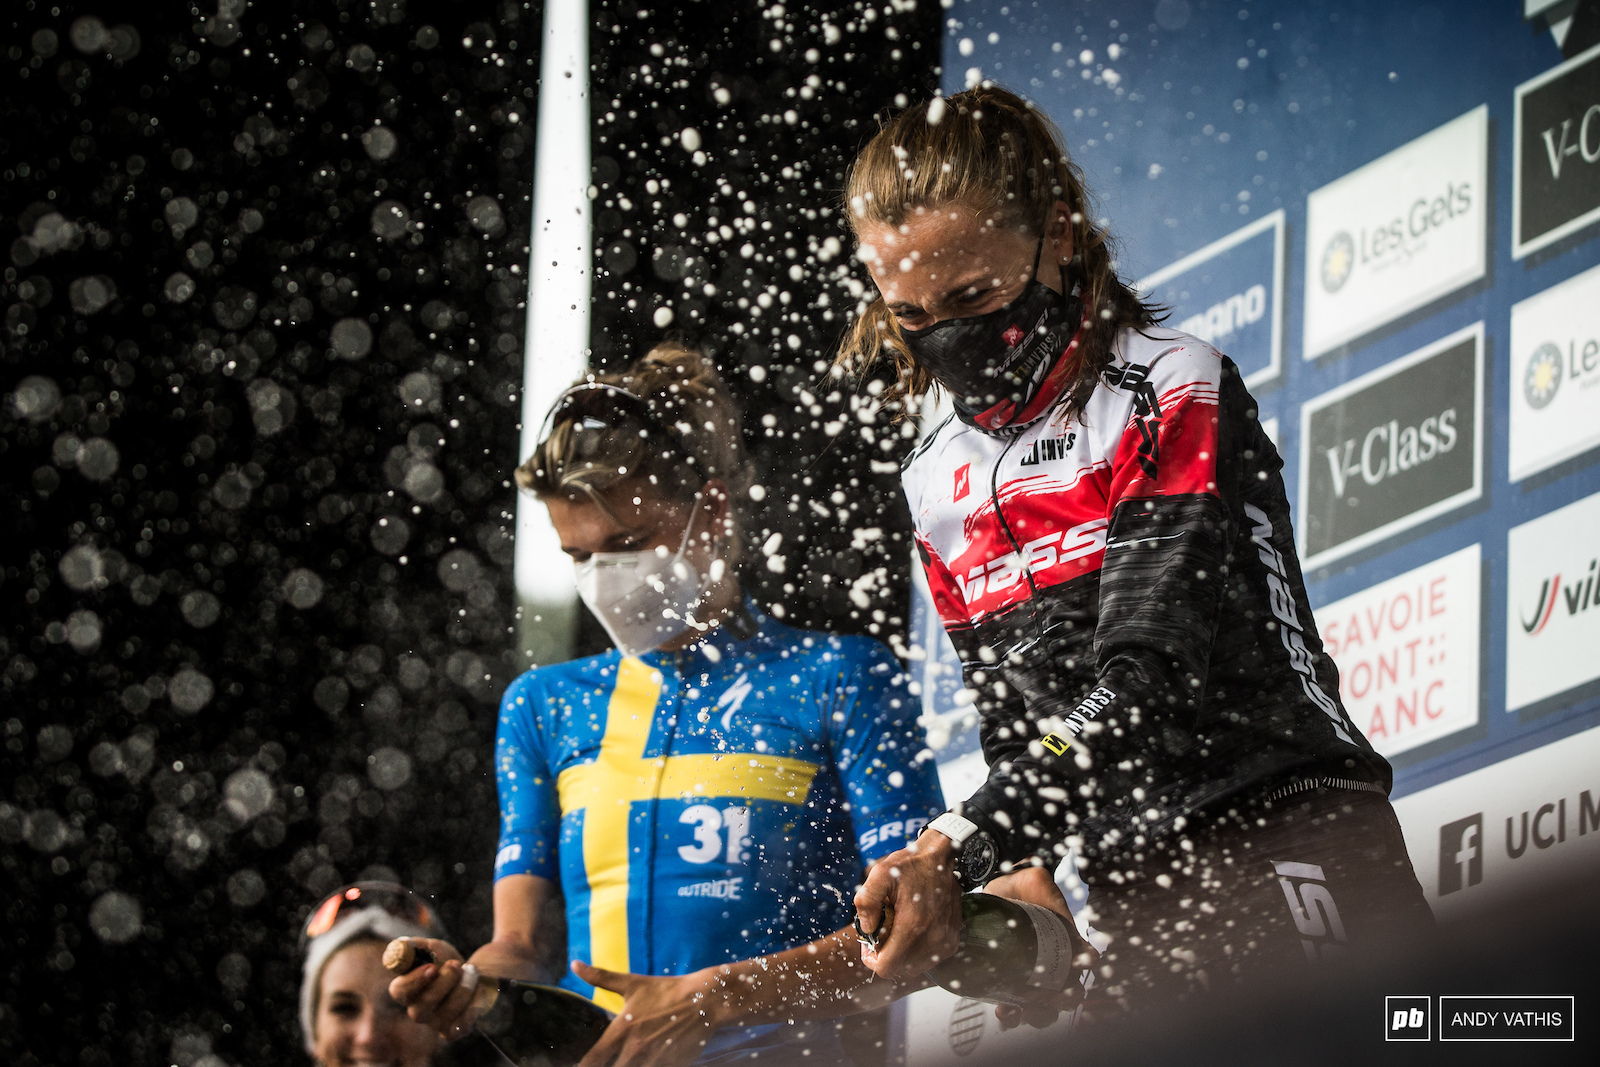 One more shower for the top women and it s bubbly.